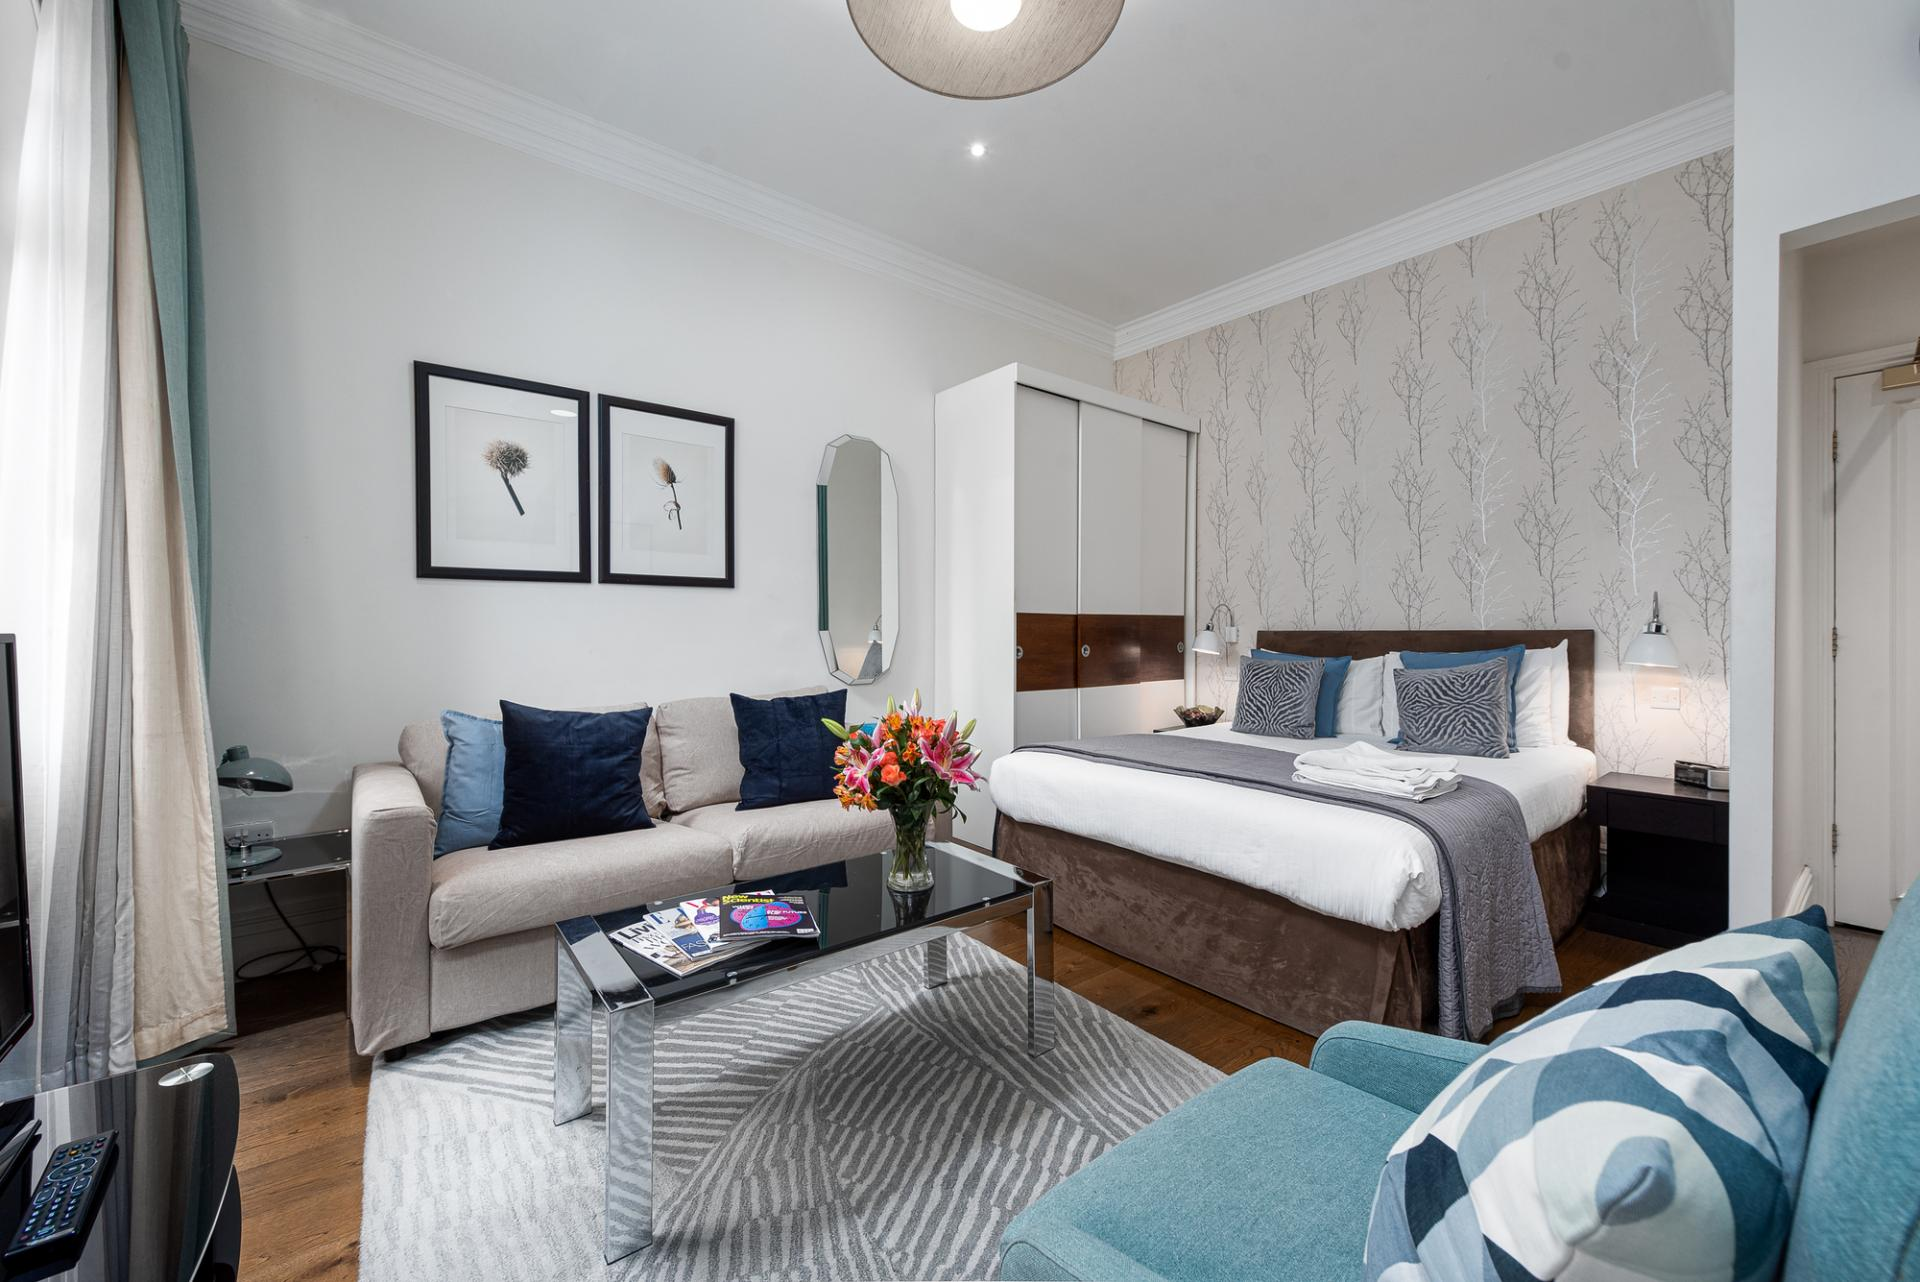 Studio at Draycott Place Serviced Apartments, Chelsea, London - Citybase Apartments